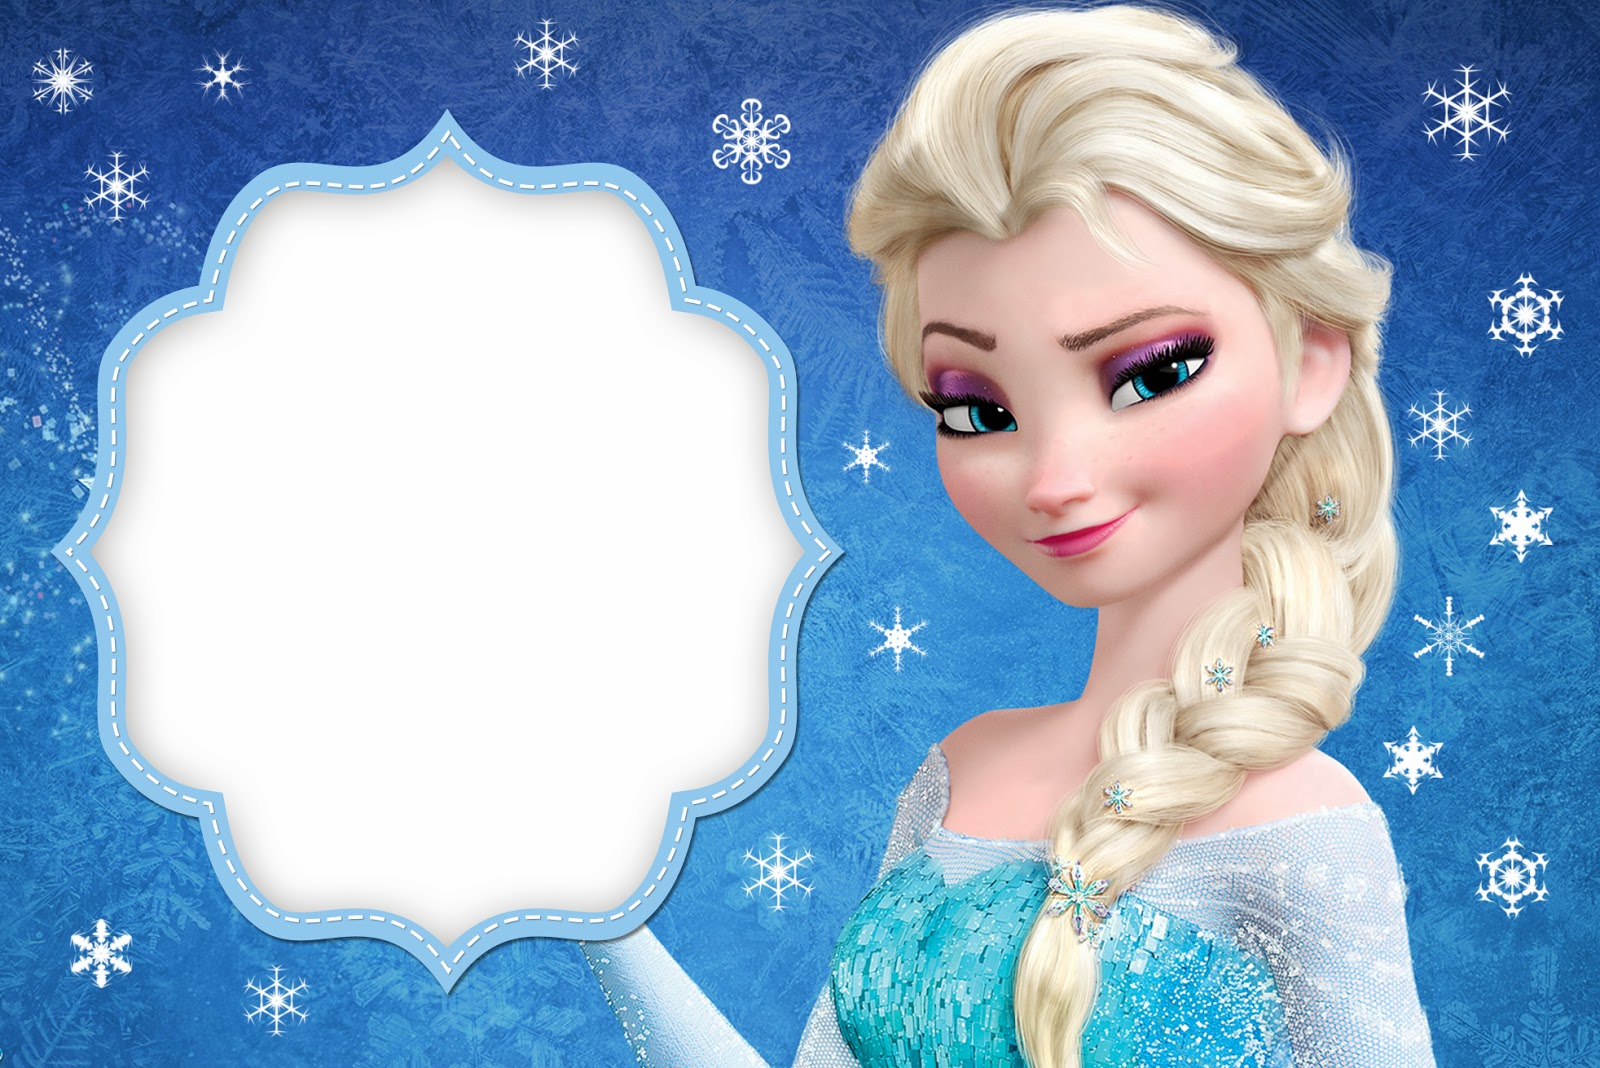 frozen free printable cards or party invitations  is it for, party invitations